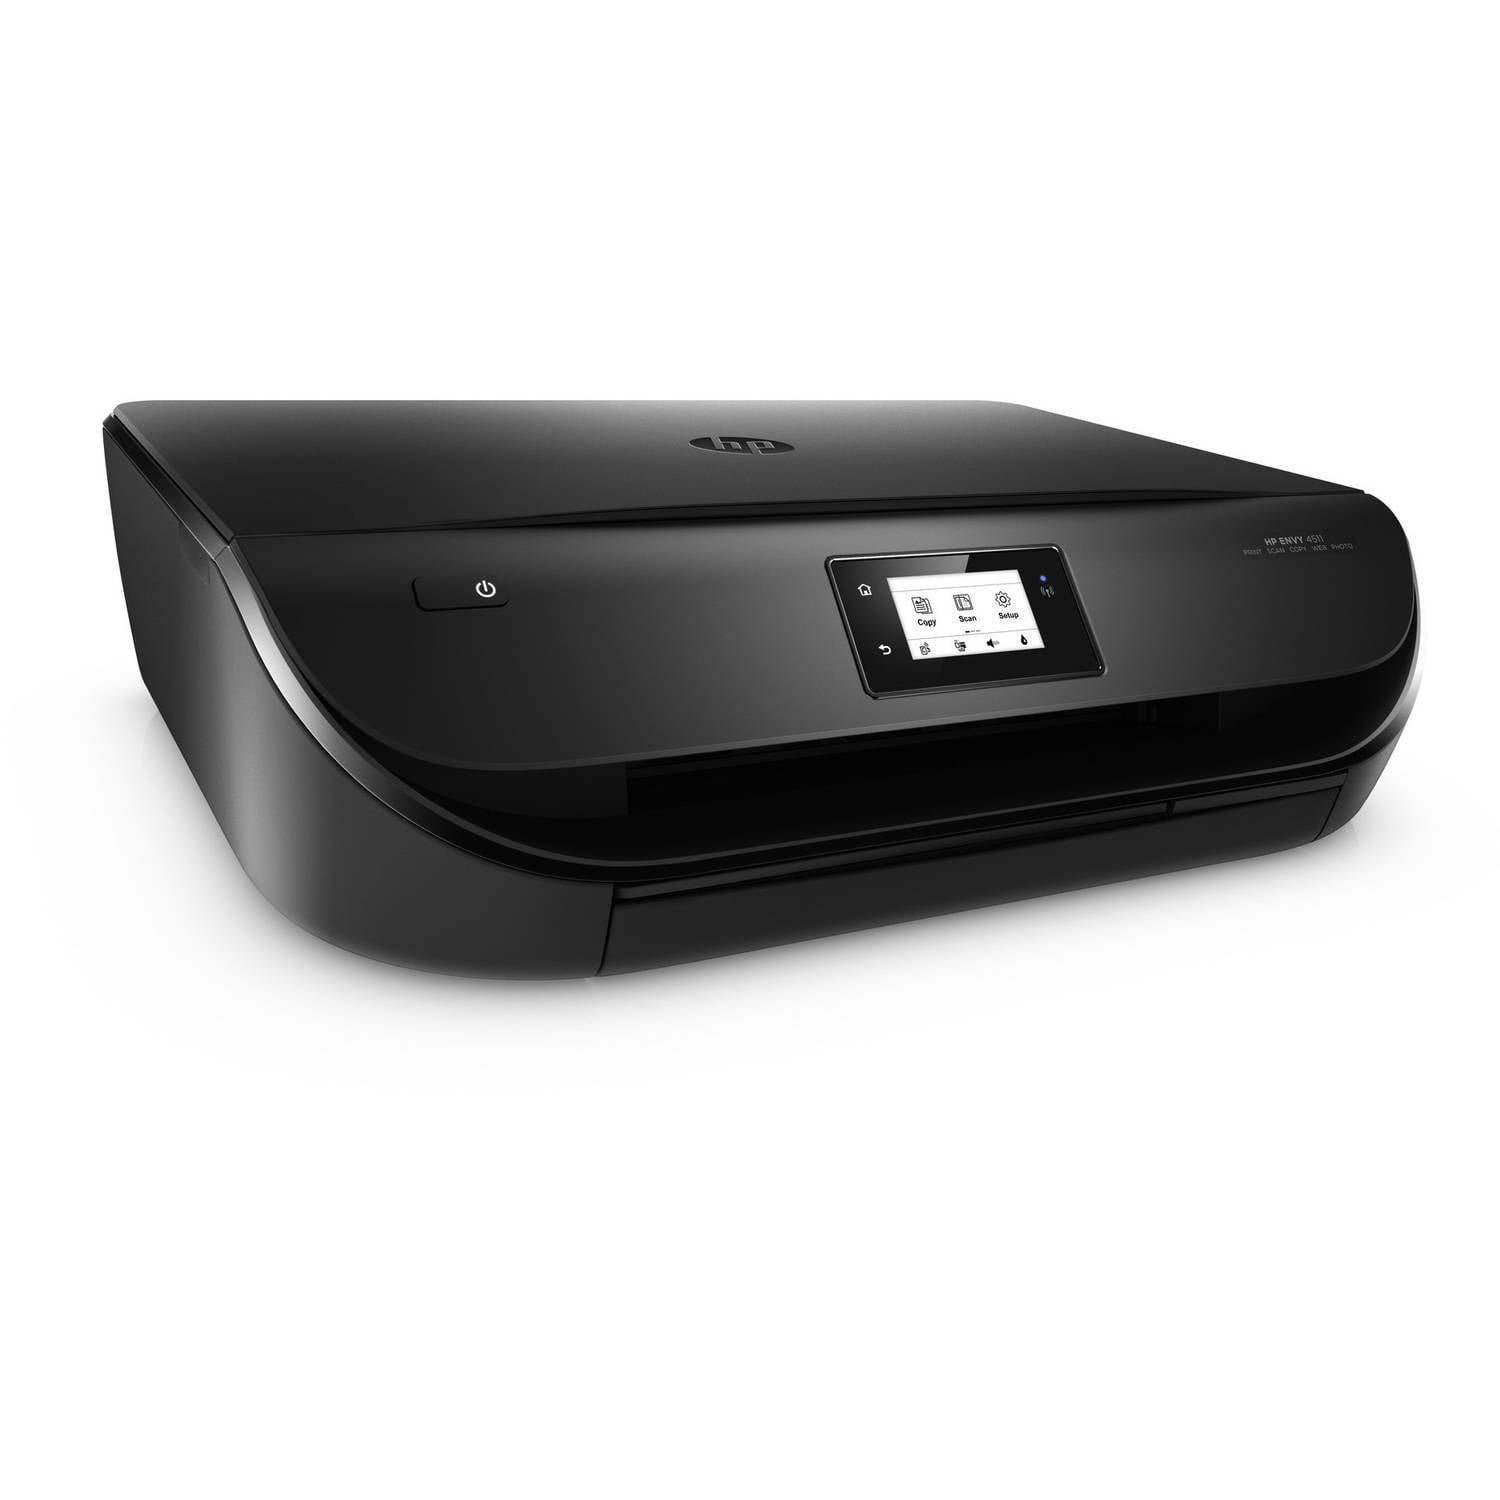 HP Envy 4511 Inkjet All-in-One Printer